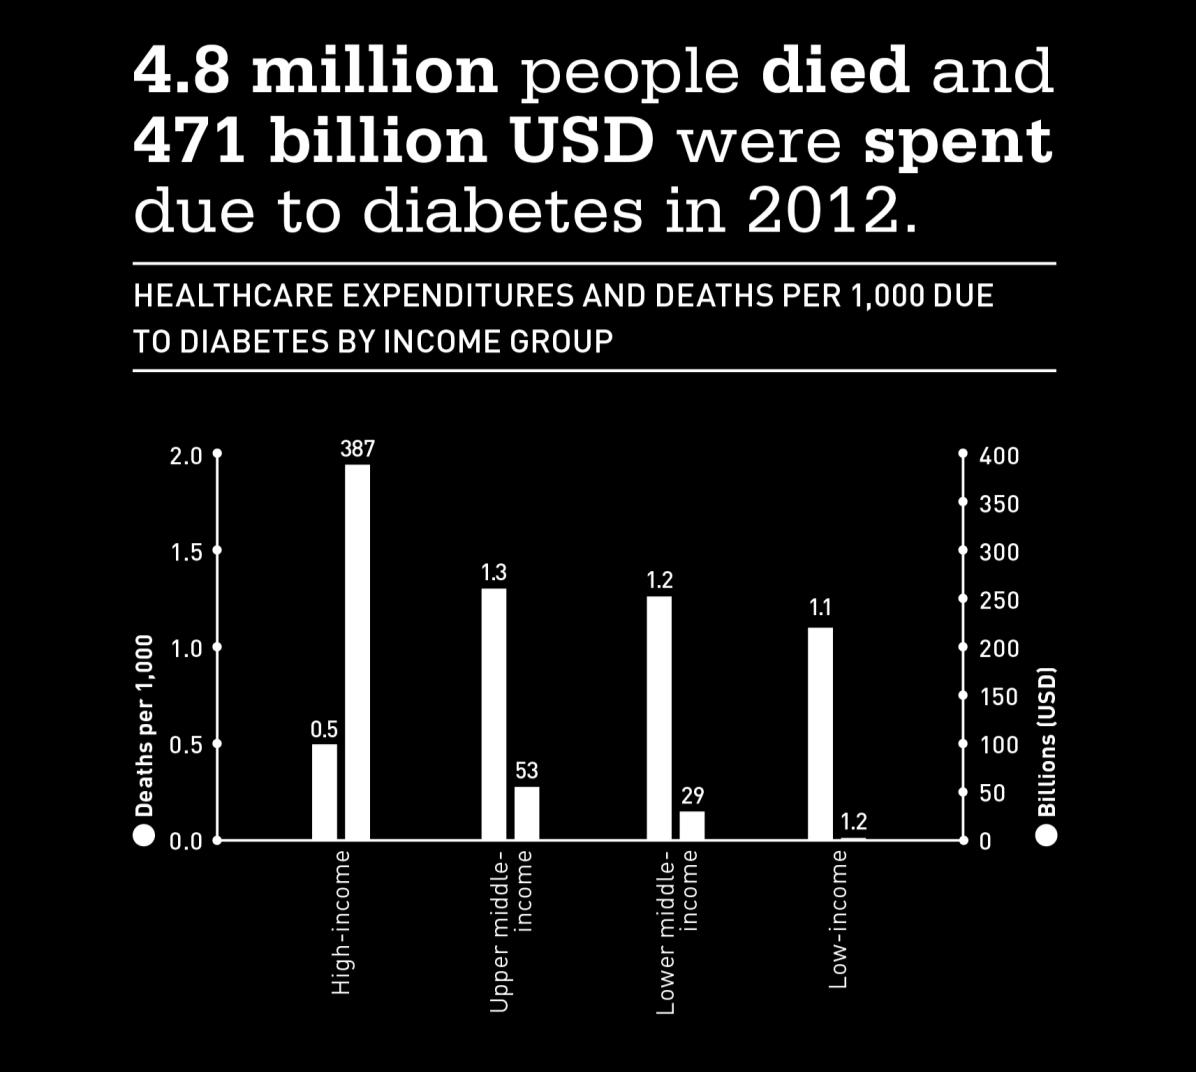 IDF Diabetes Atlas.